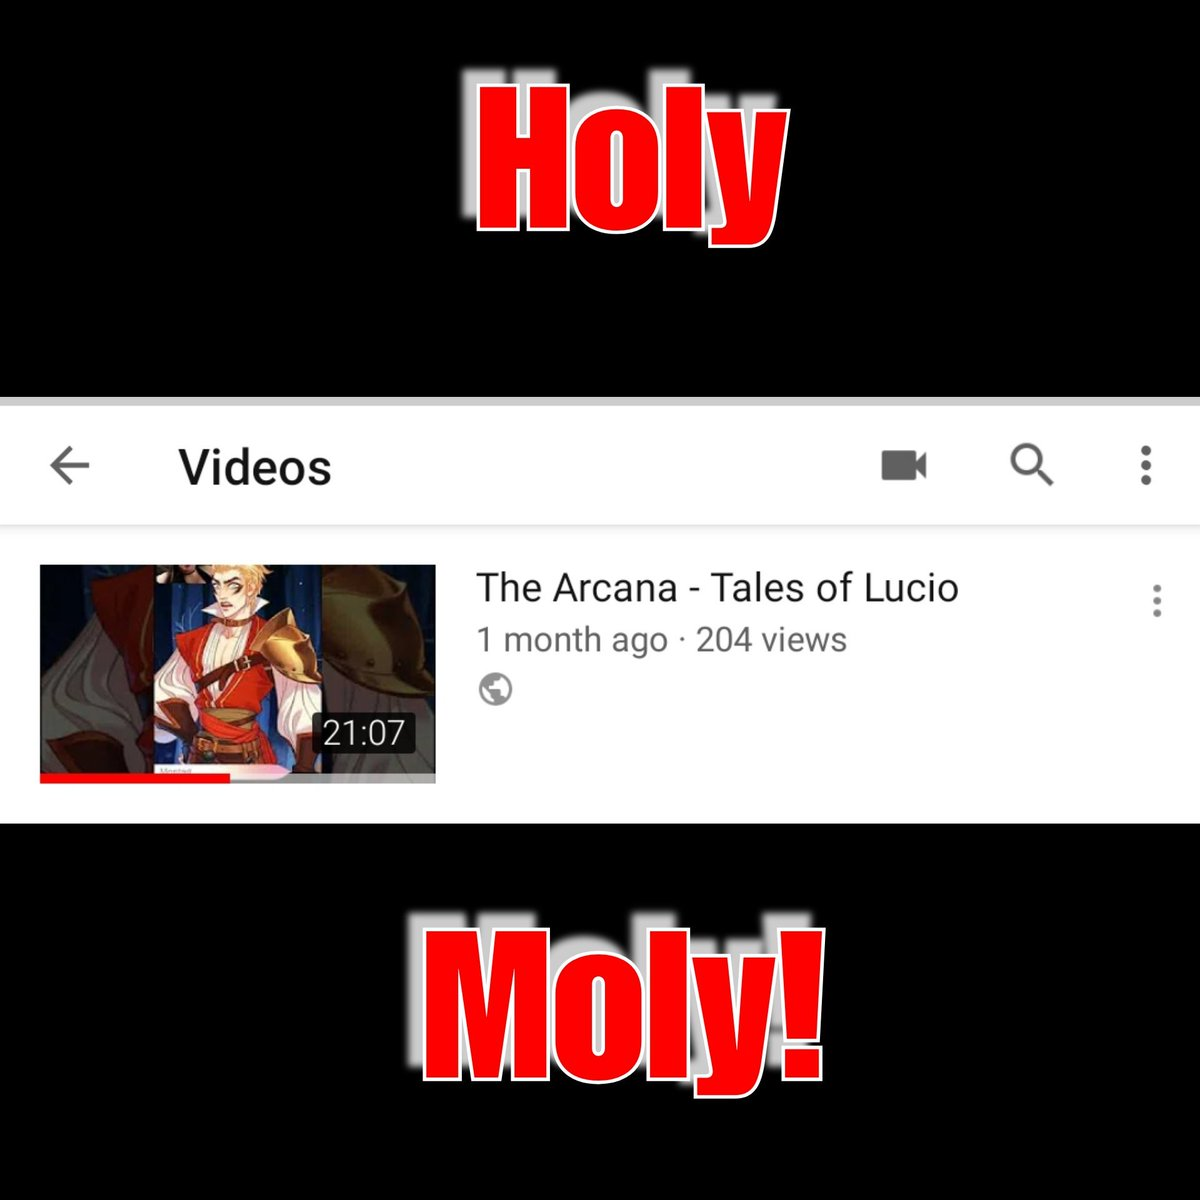 My Tales of Lucio video from The Arcana now has 200 views! @thearcanagame